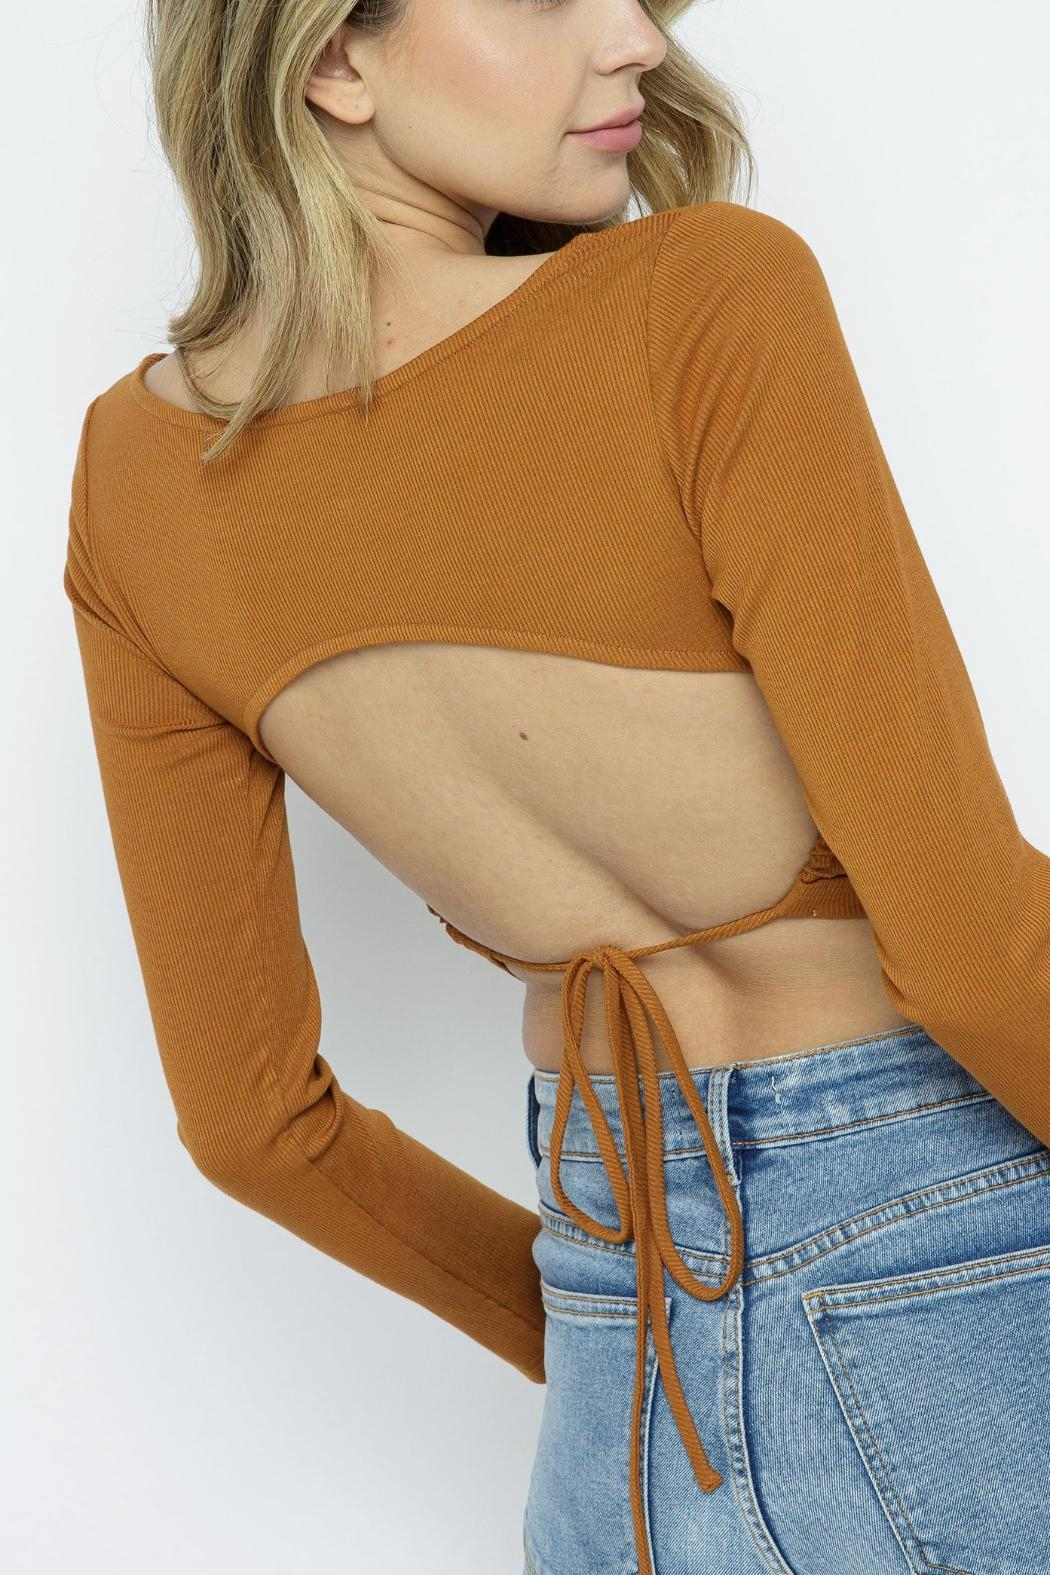 Pretty Little Things Ribbed Backless Top - Front Full Image